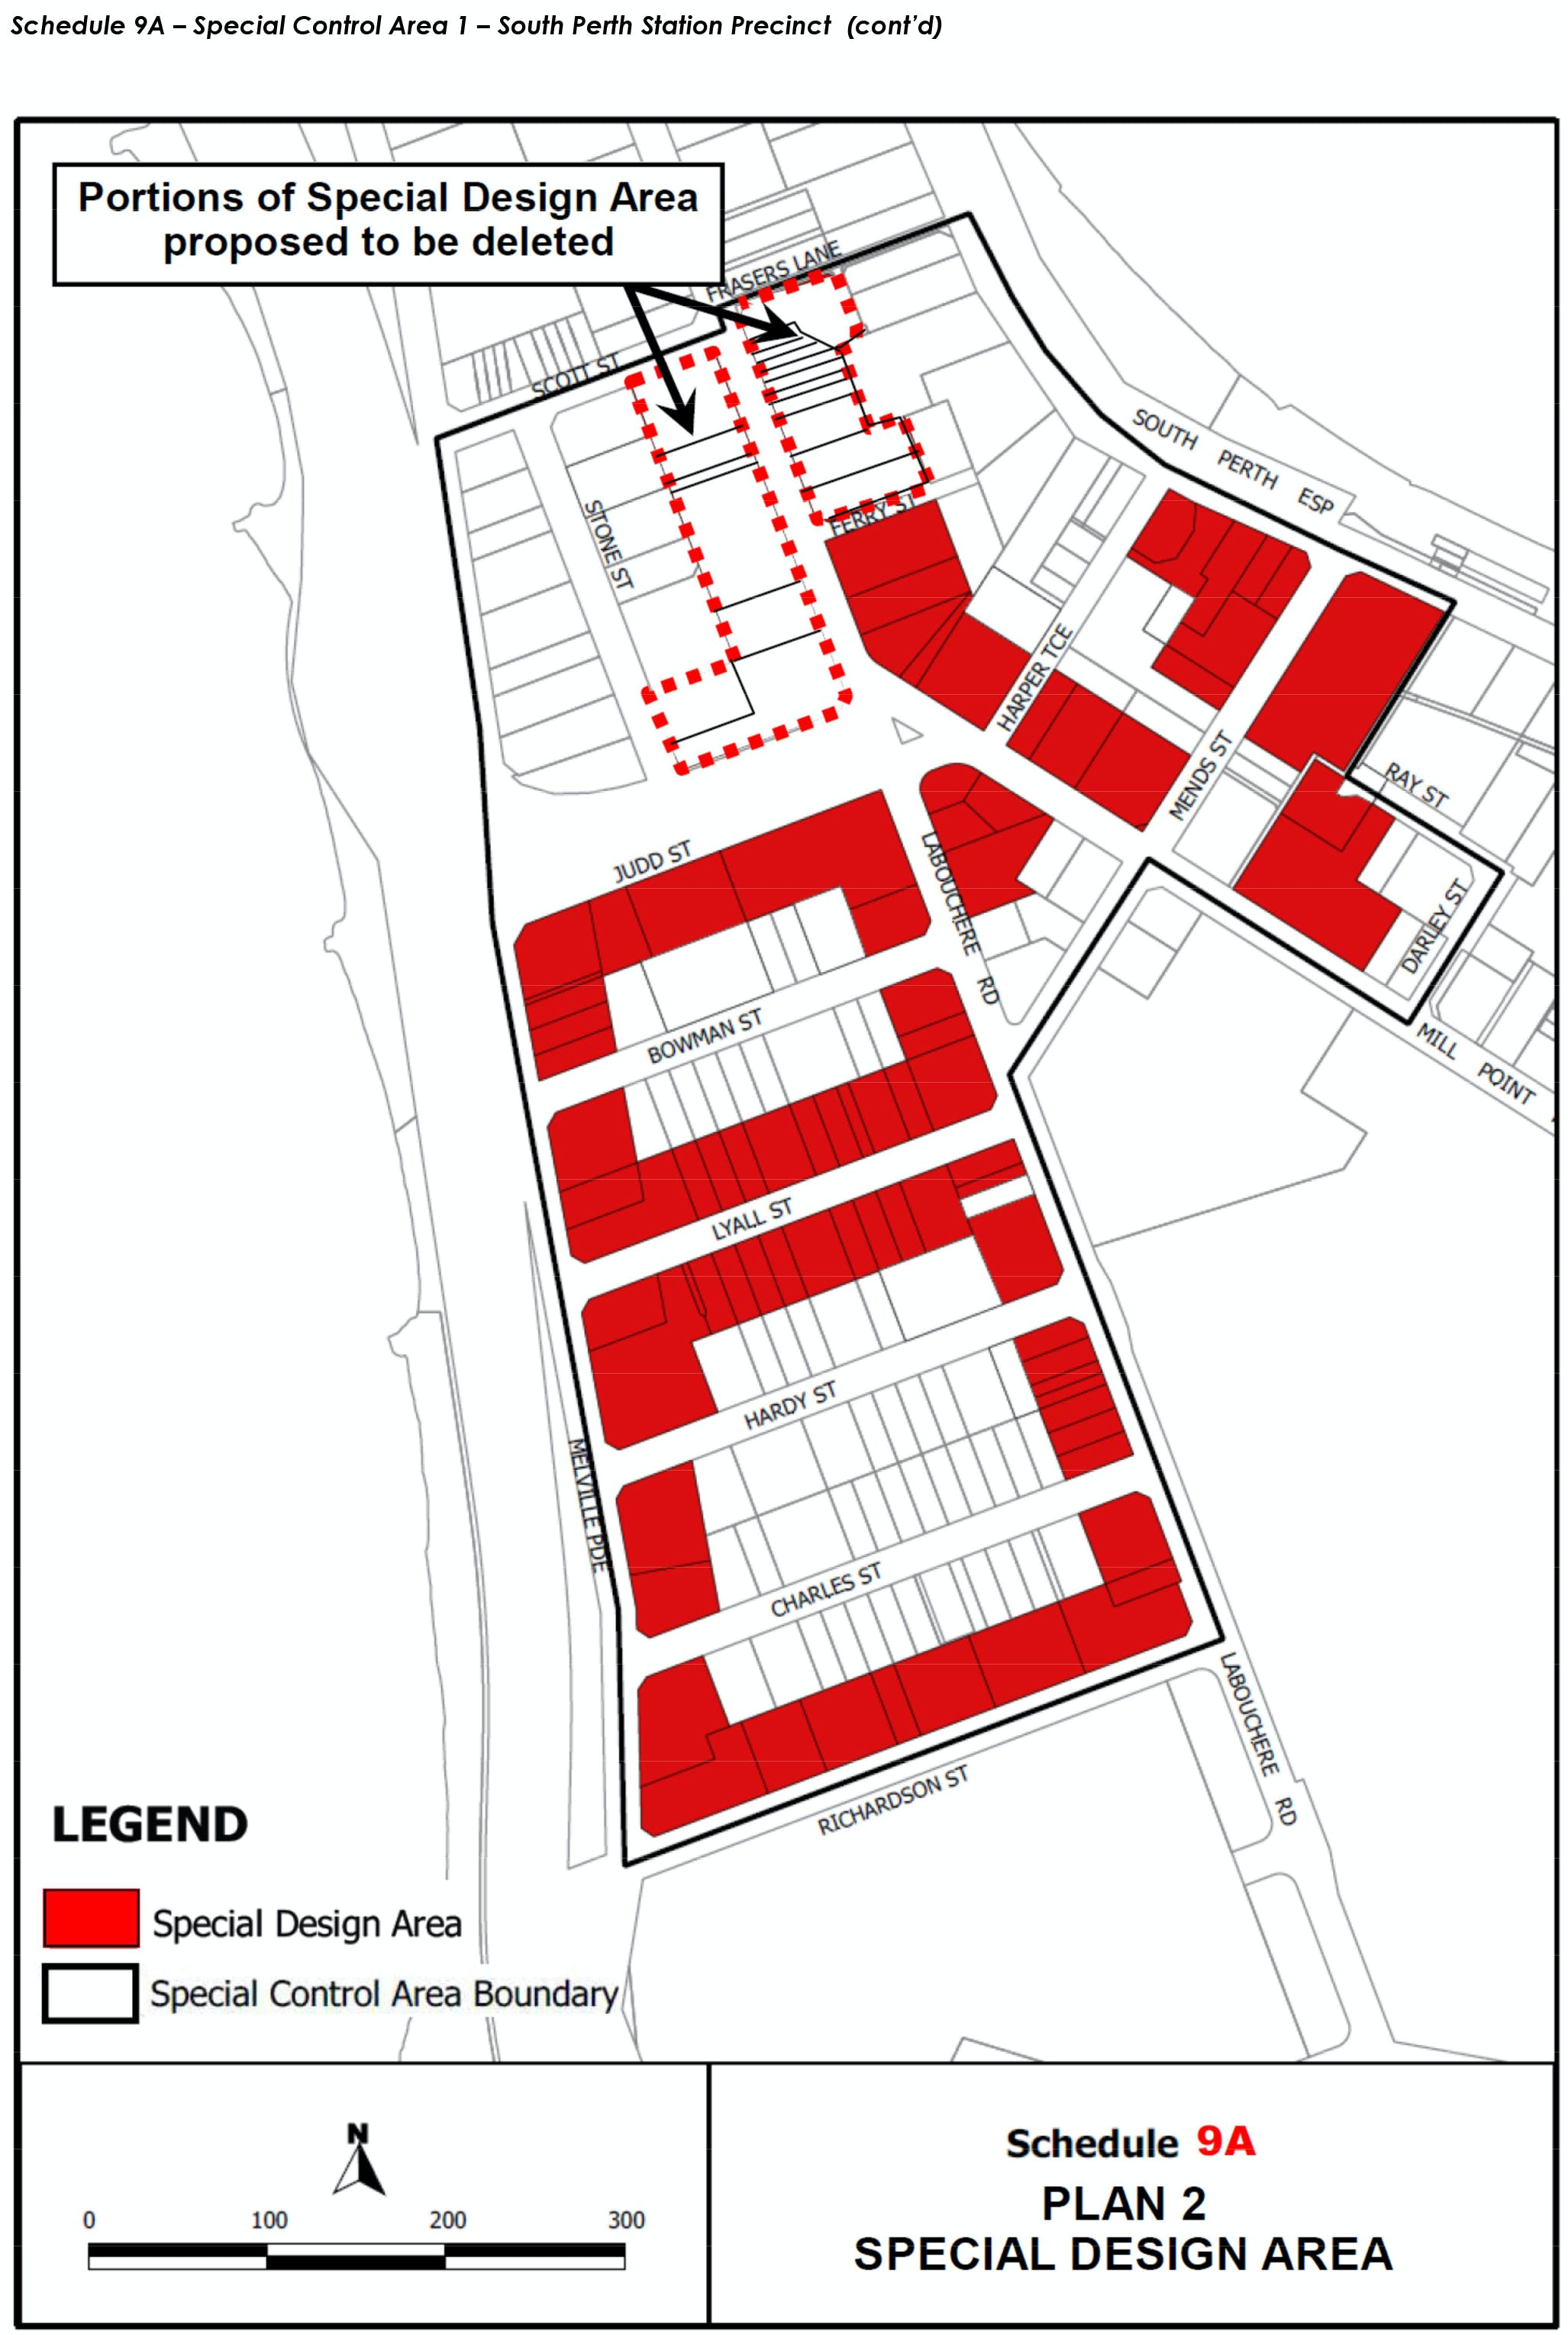 Amendment 46 Special Design Area map